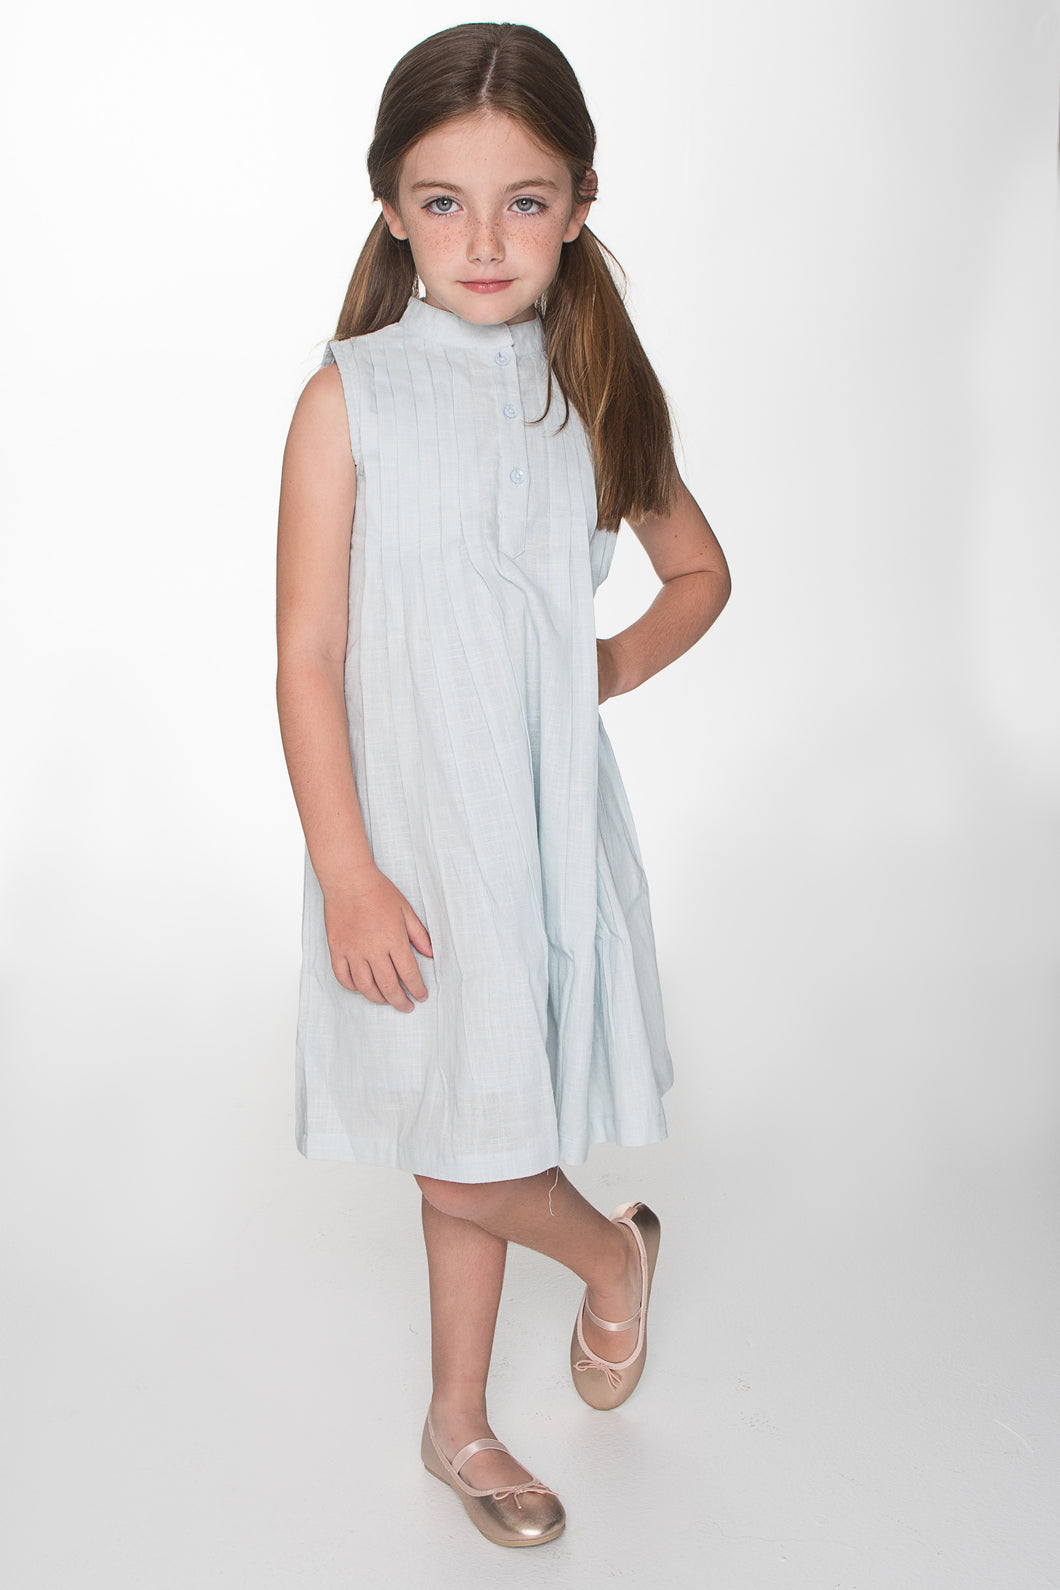 Light Blue Pin Tuck Detail Shift Dress - Kids Wholesale Boutique Clothing, Dress - Girls Dresses, Yo Baby Wholesale - Yo Baby